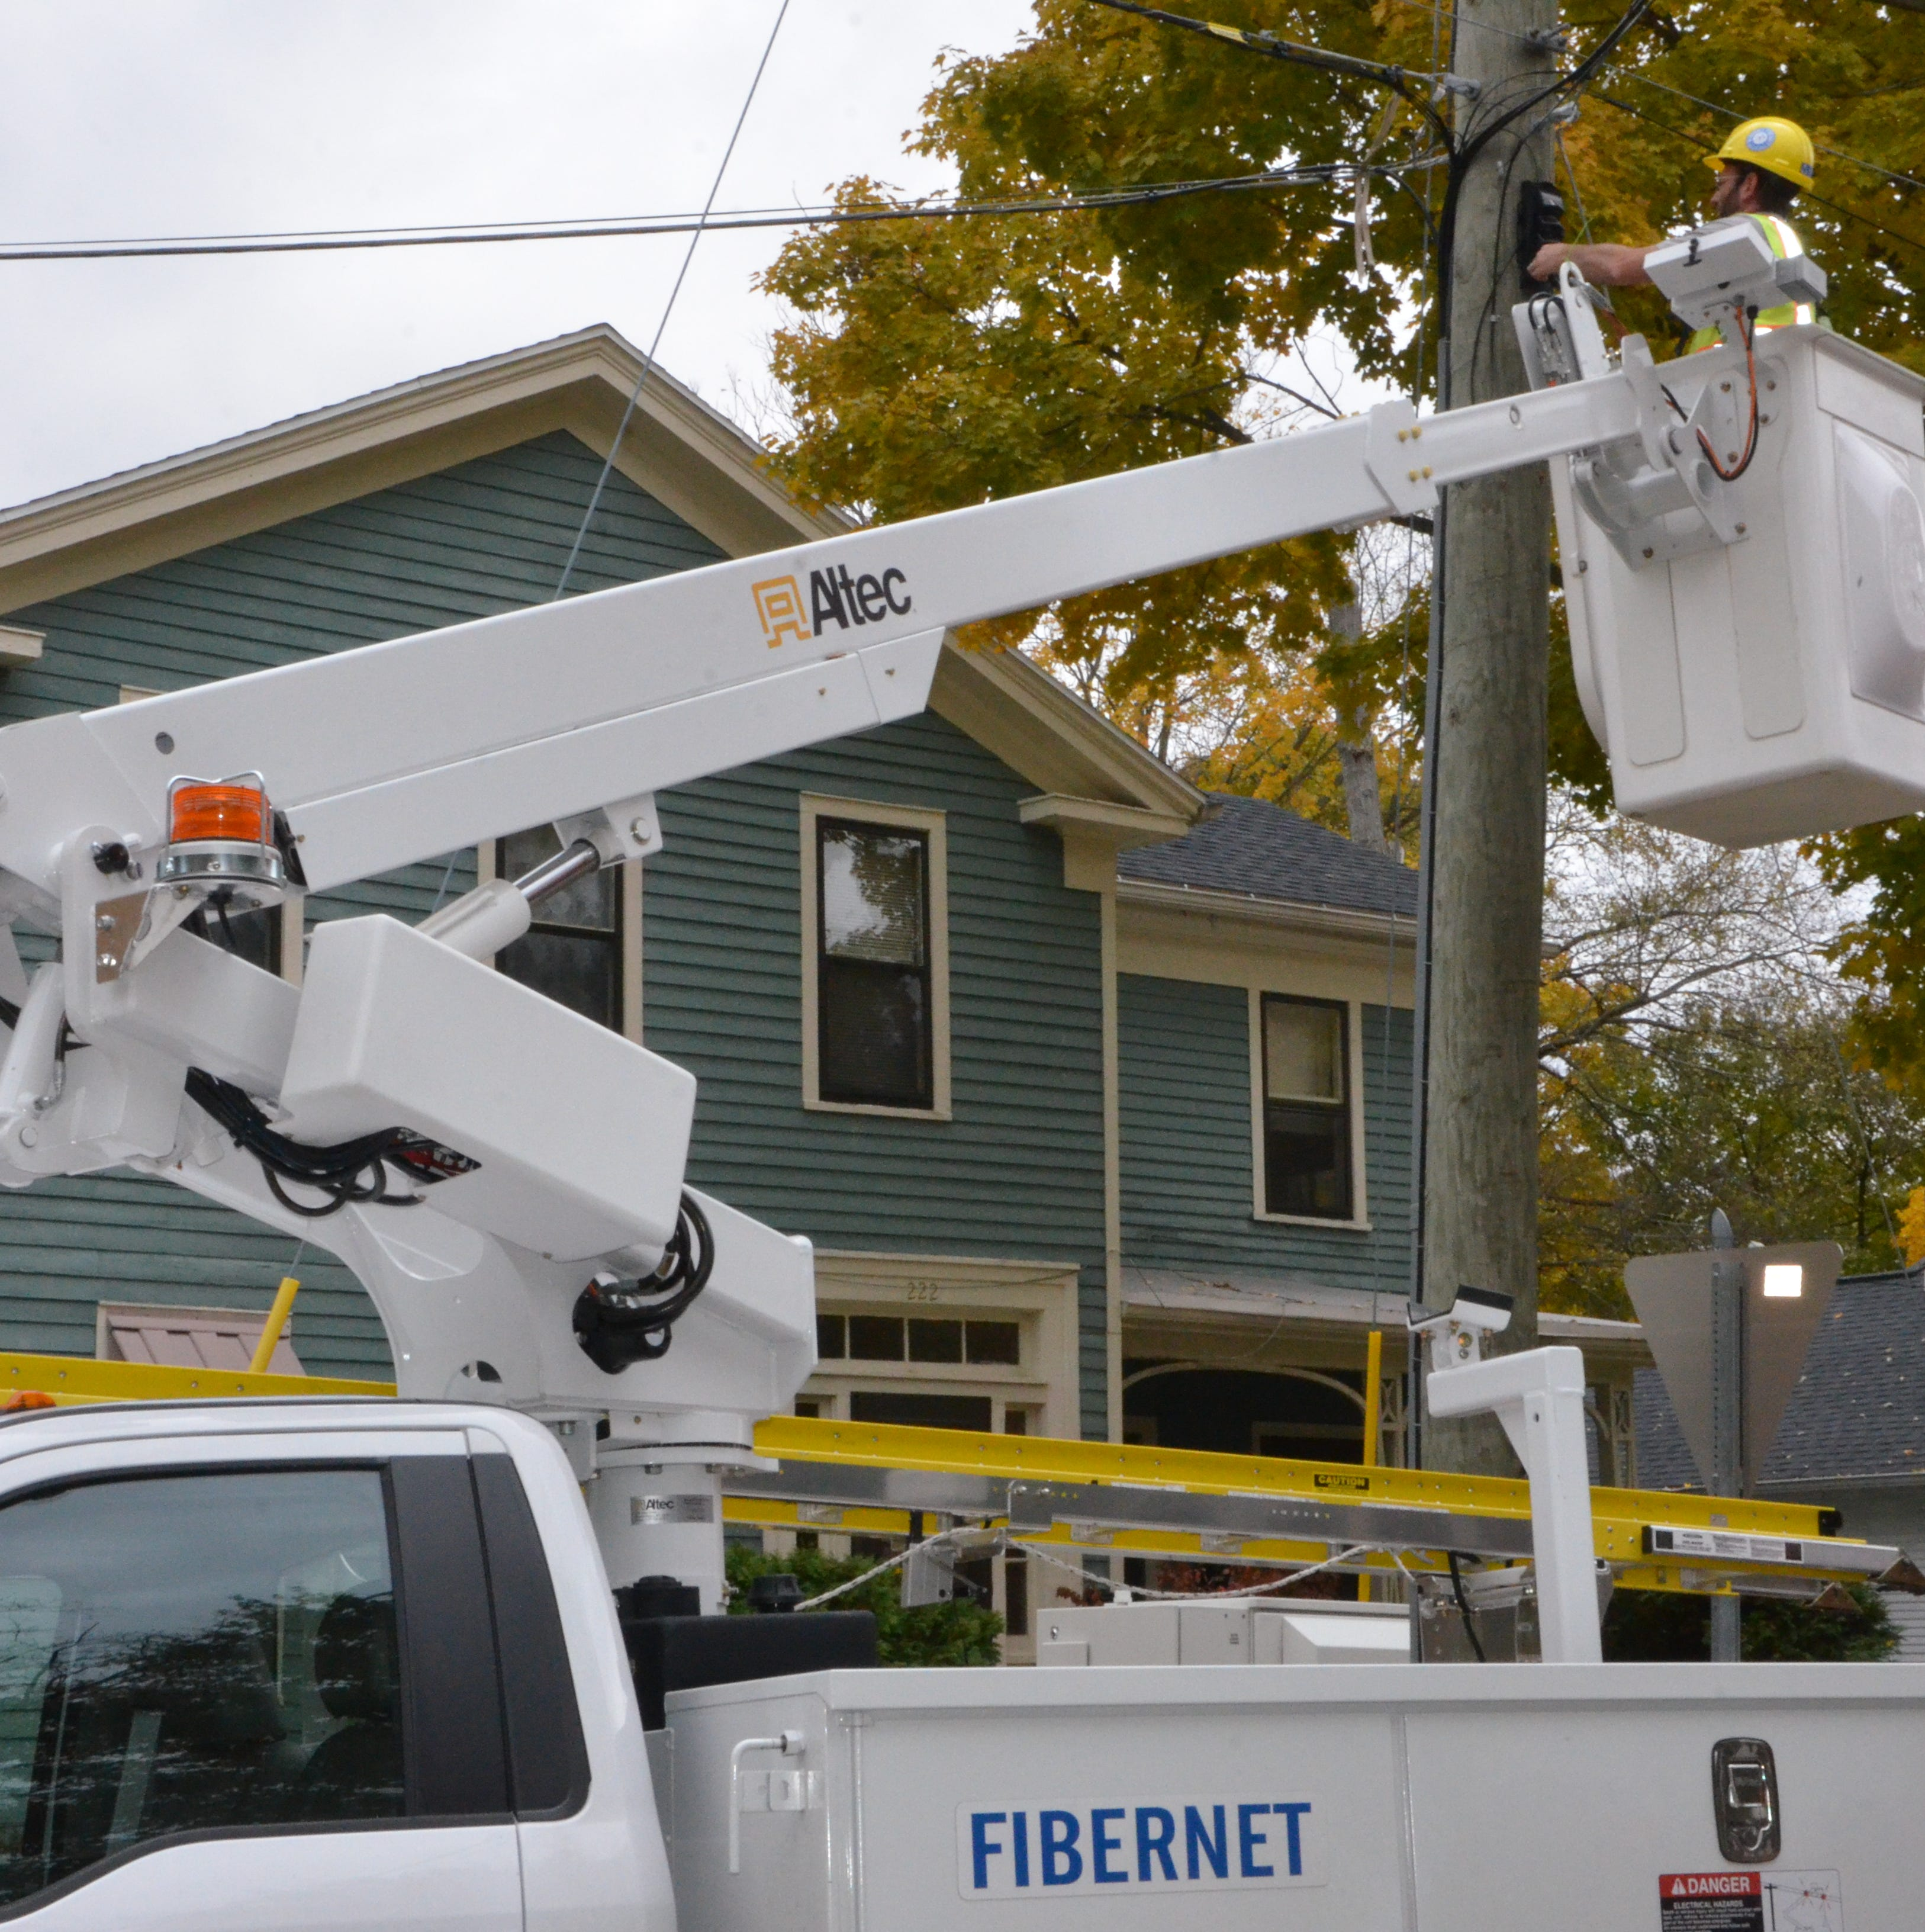 Internet service in Marshall was slow, so the city built its own fiber-optic network